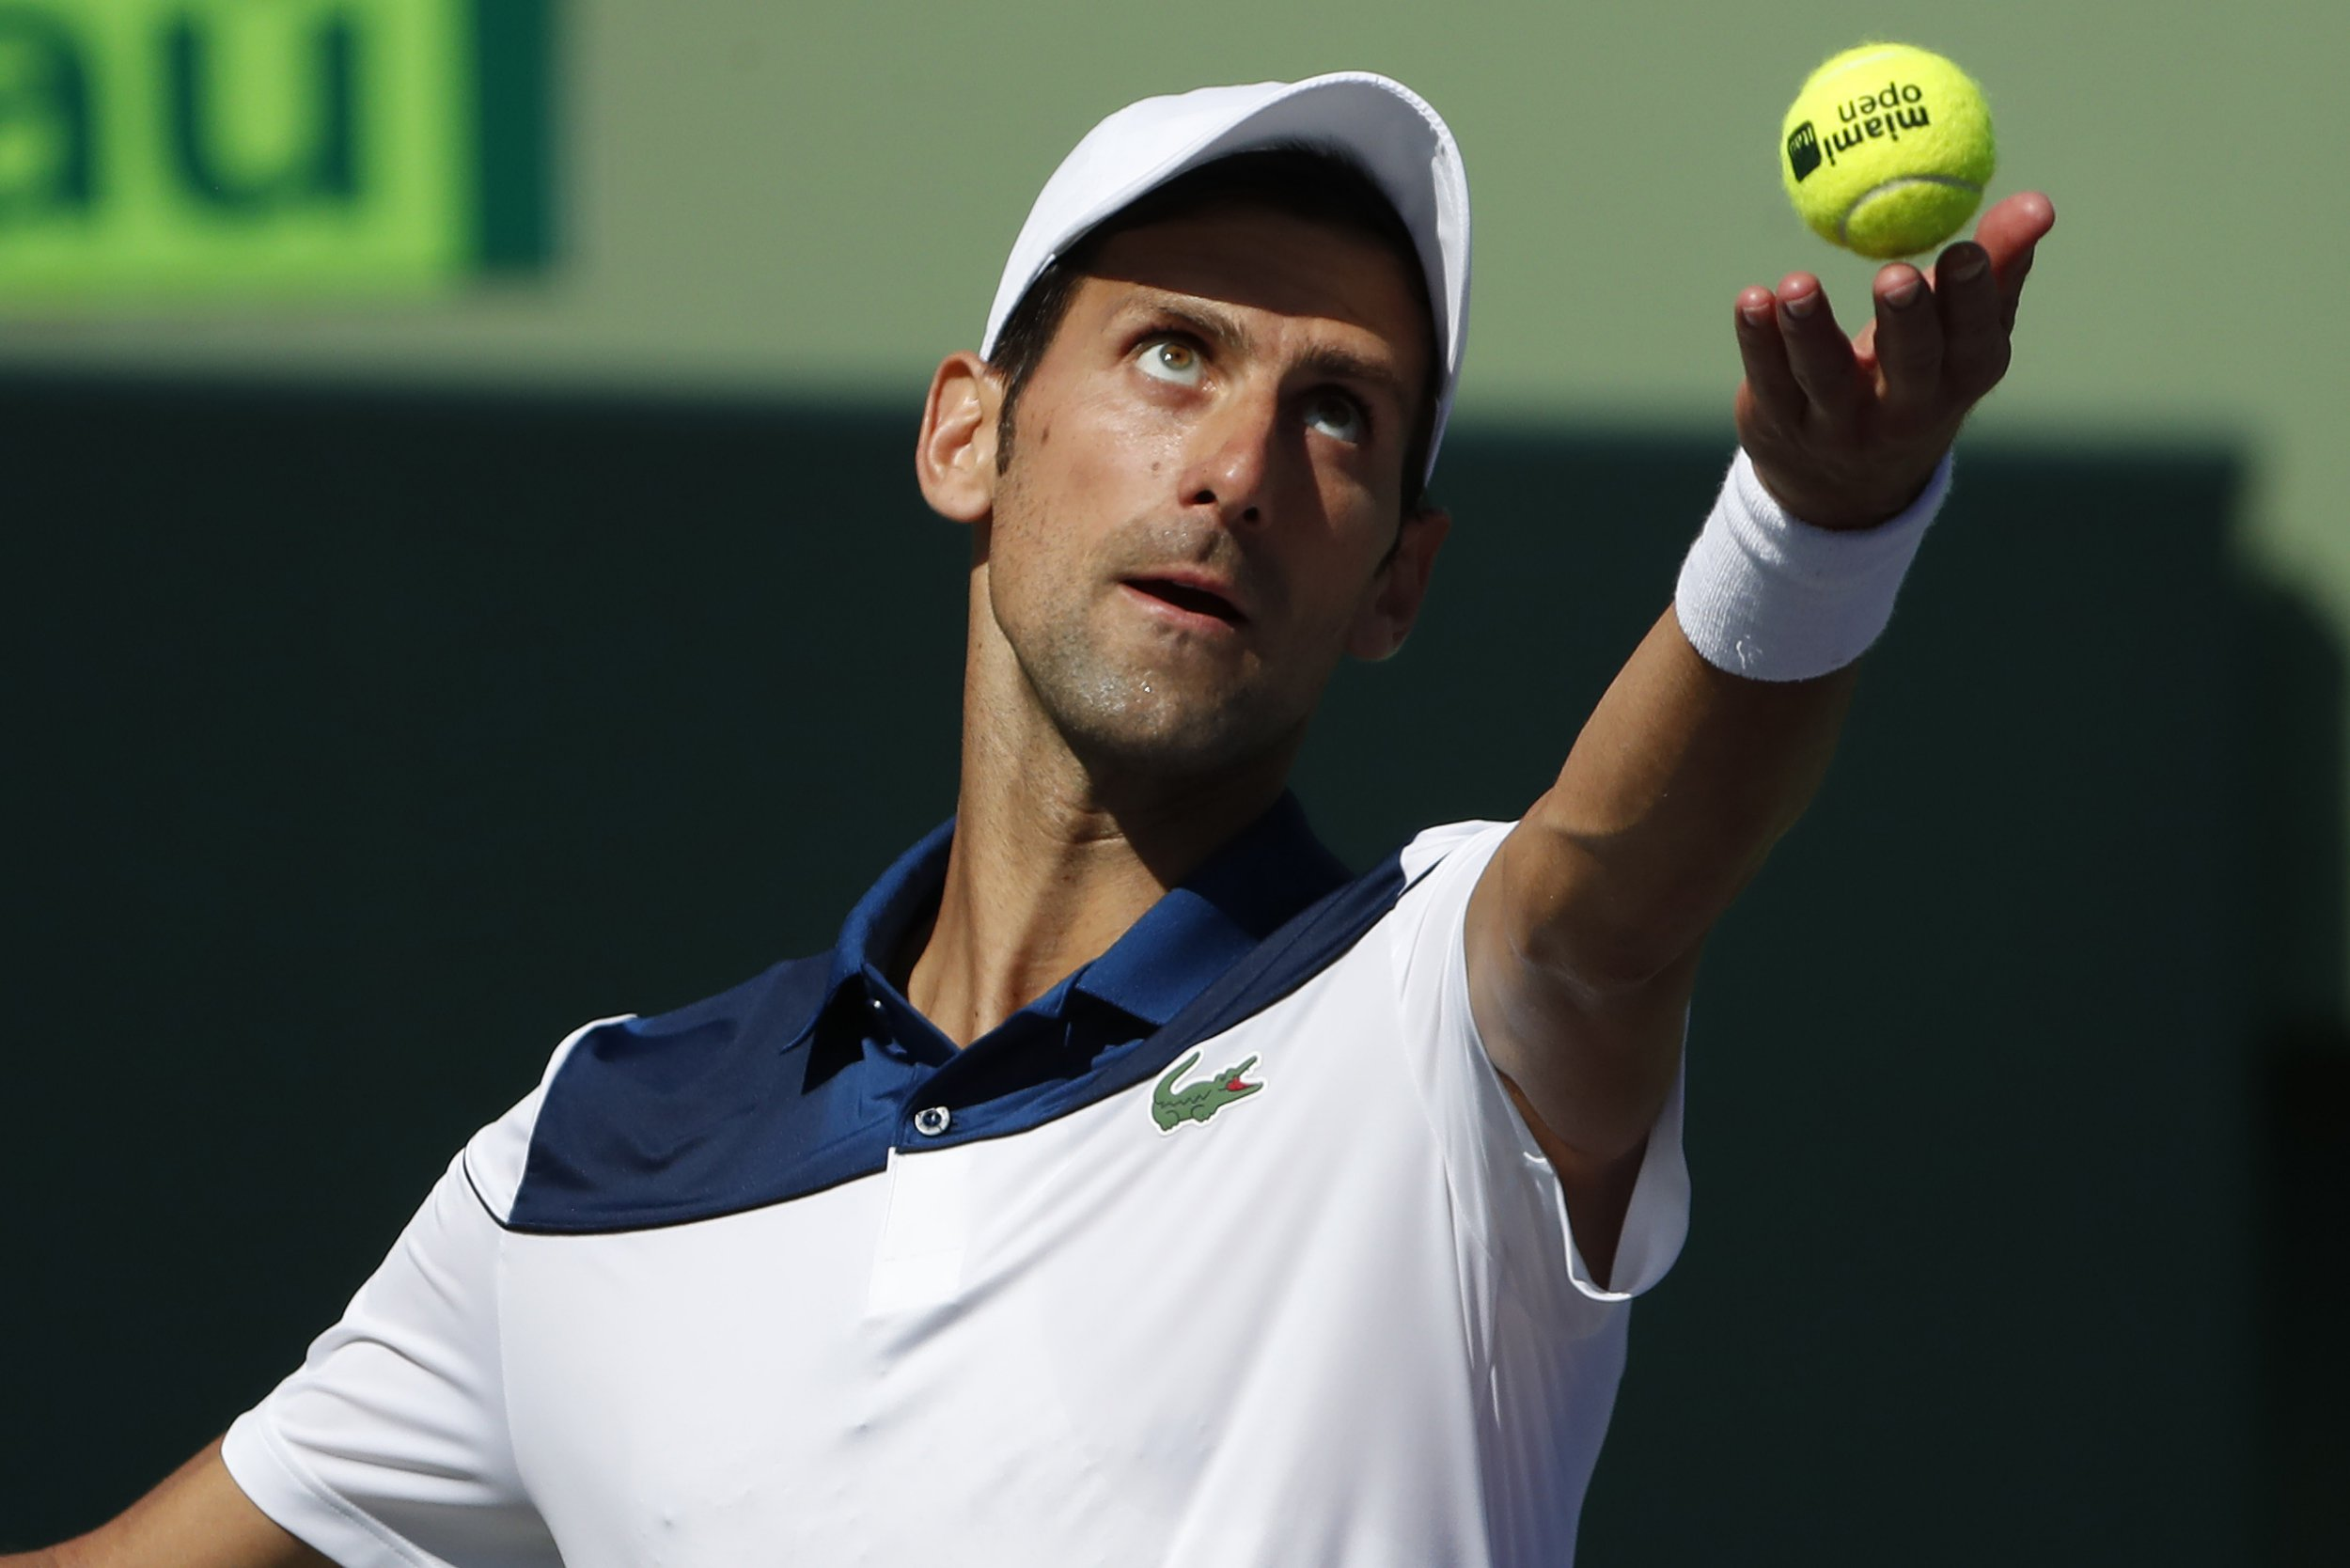 Mar 23, 2018; Key Biscayne, FL, USA; Novak Djokovic of Serbia serves against Benoit Paire of France (not pictured) on day four of the Miami Open at Tennis Center at Crandon Park. Paire won 6-3, 6-4. Mandatory Credit: Geoff Burke-USA TODAY Sports